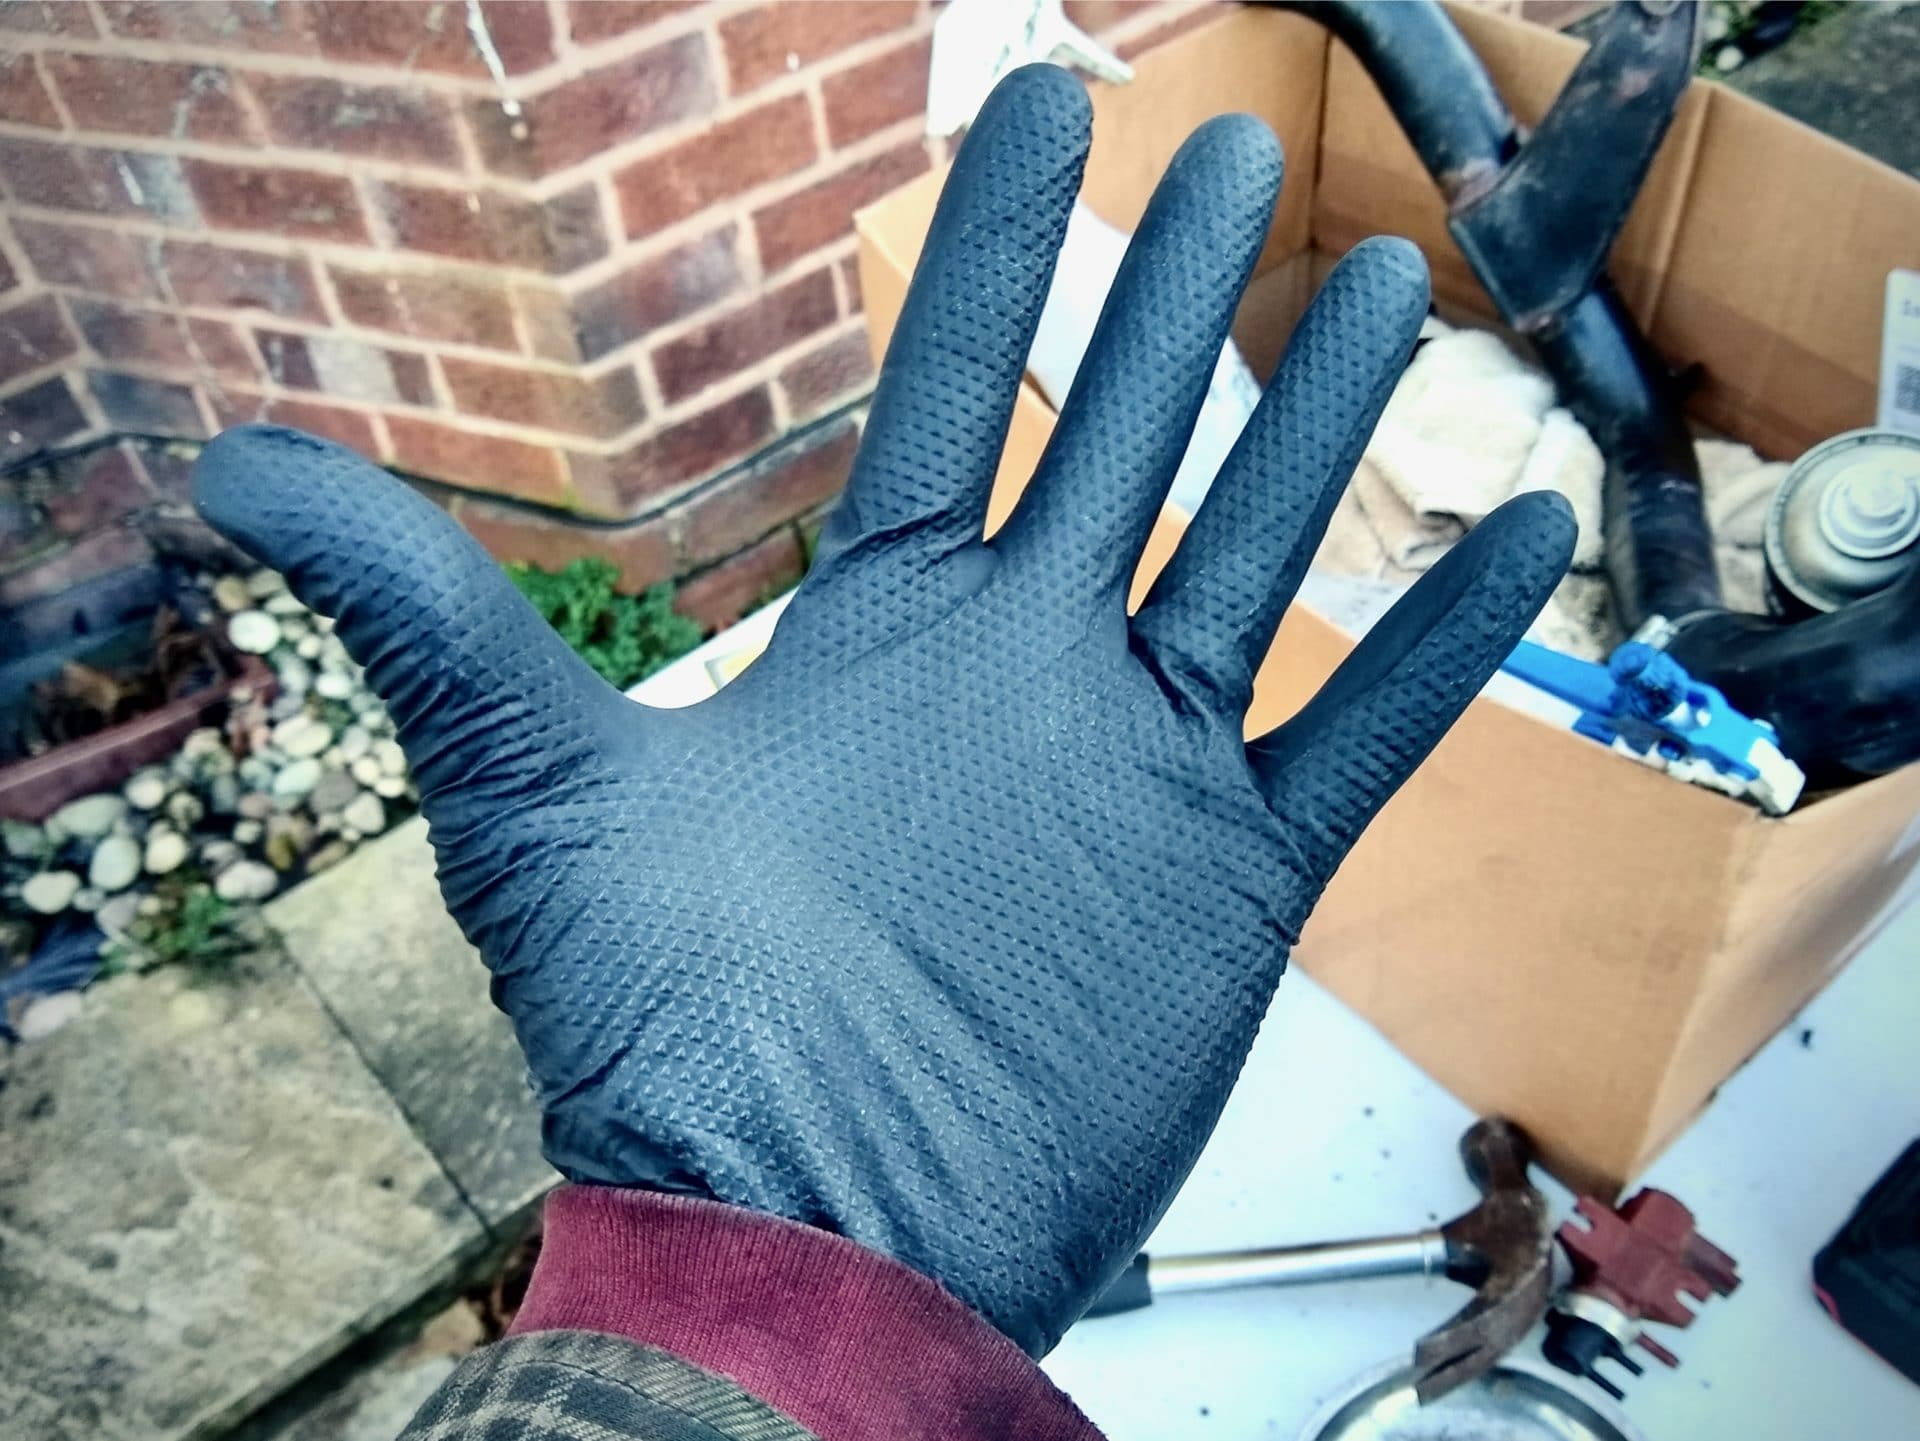 bargain or bollocks, not2grand, not2grand.co.uk, product review, gloves, nitrile gloves, rubber gloves, mechanic, working on cars, fixing cars, equipment, Fortress Distribution, Black Mamba, Torque Grip